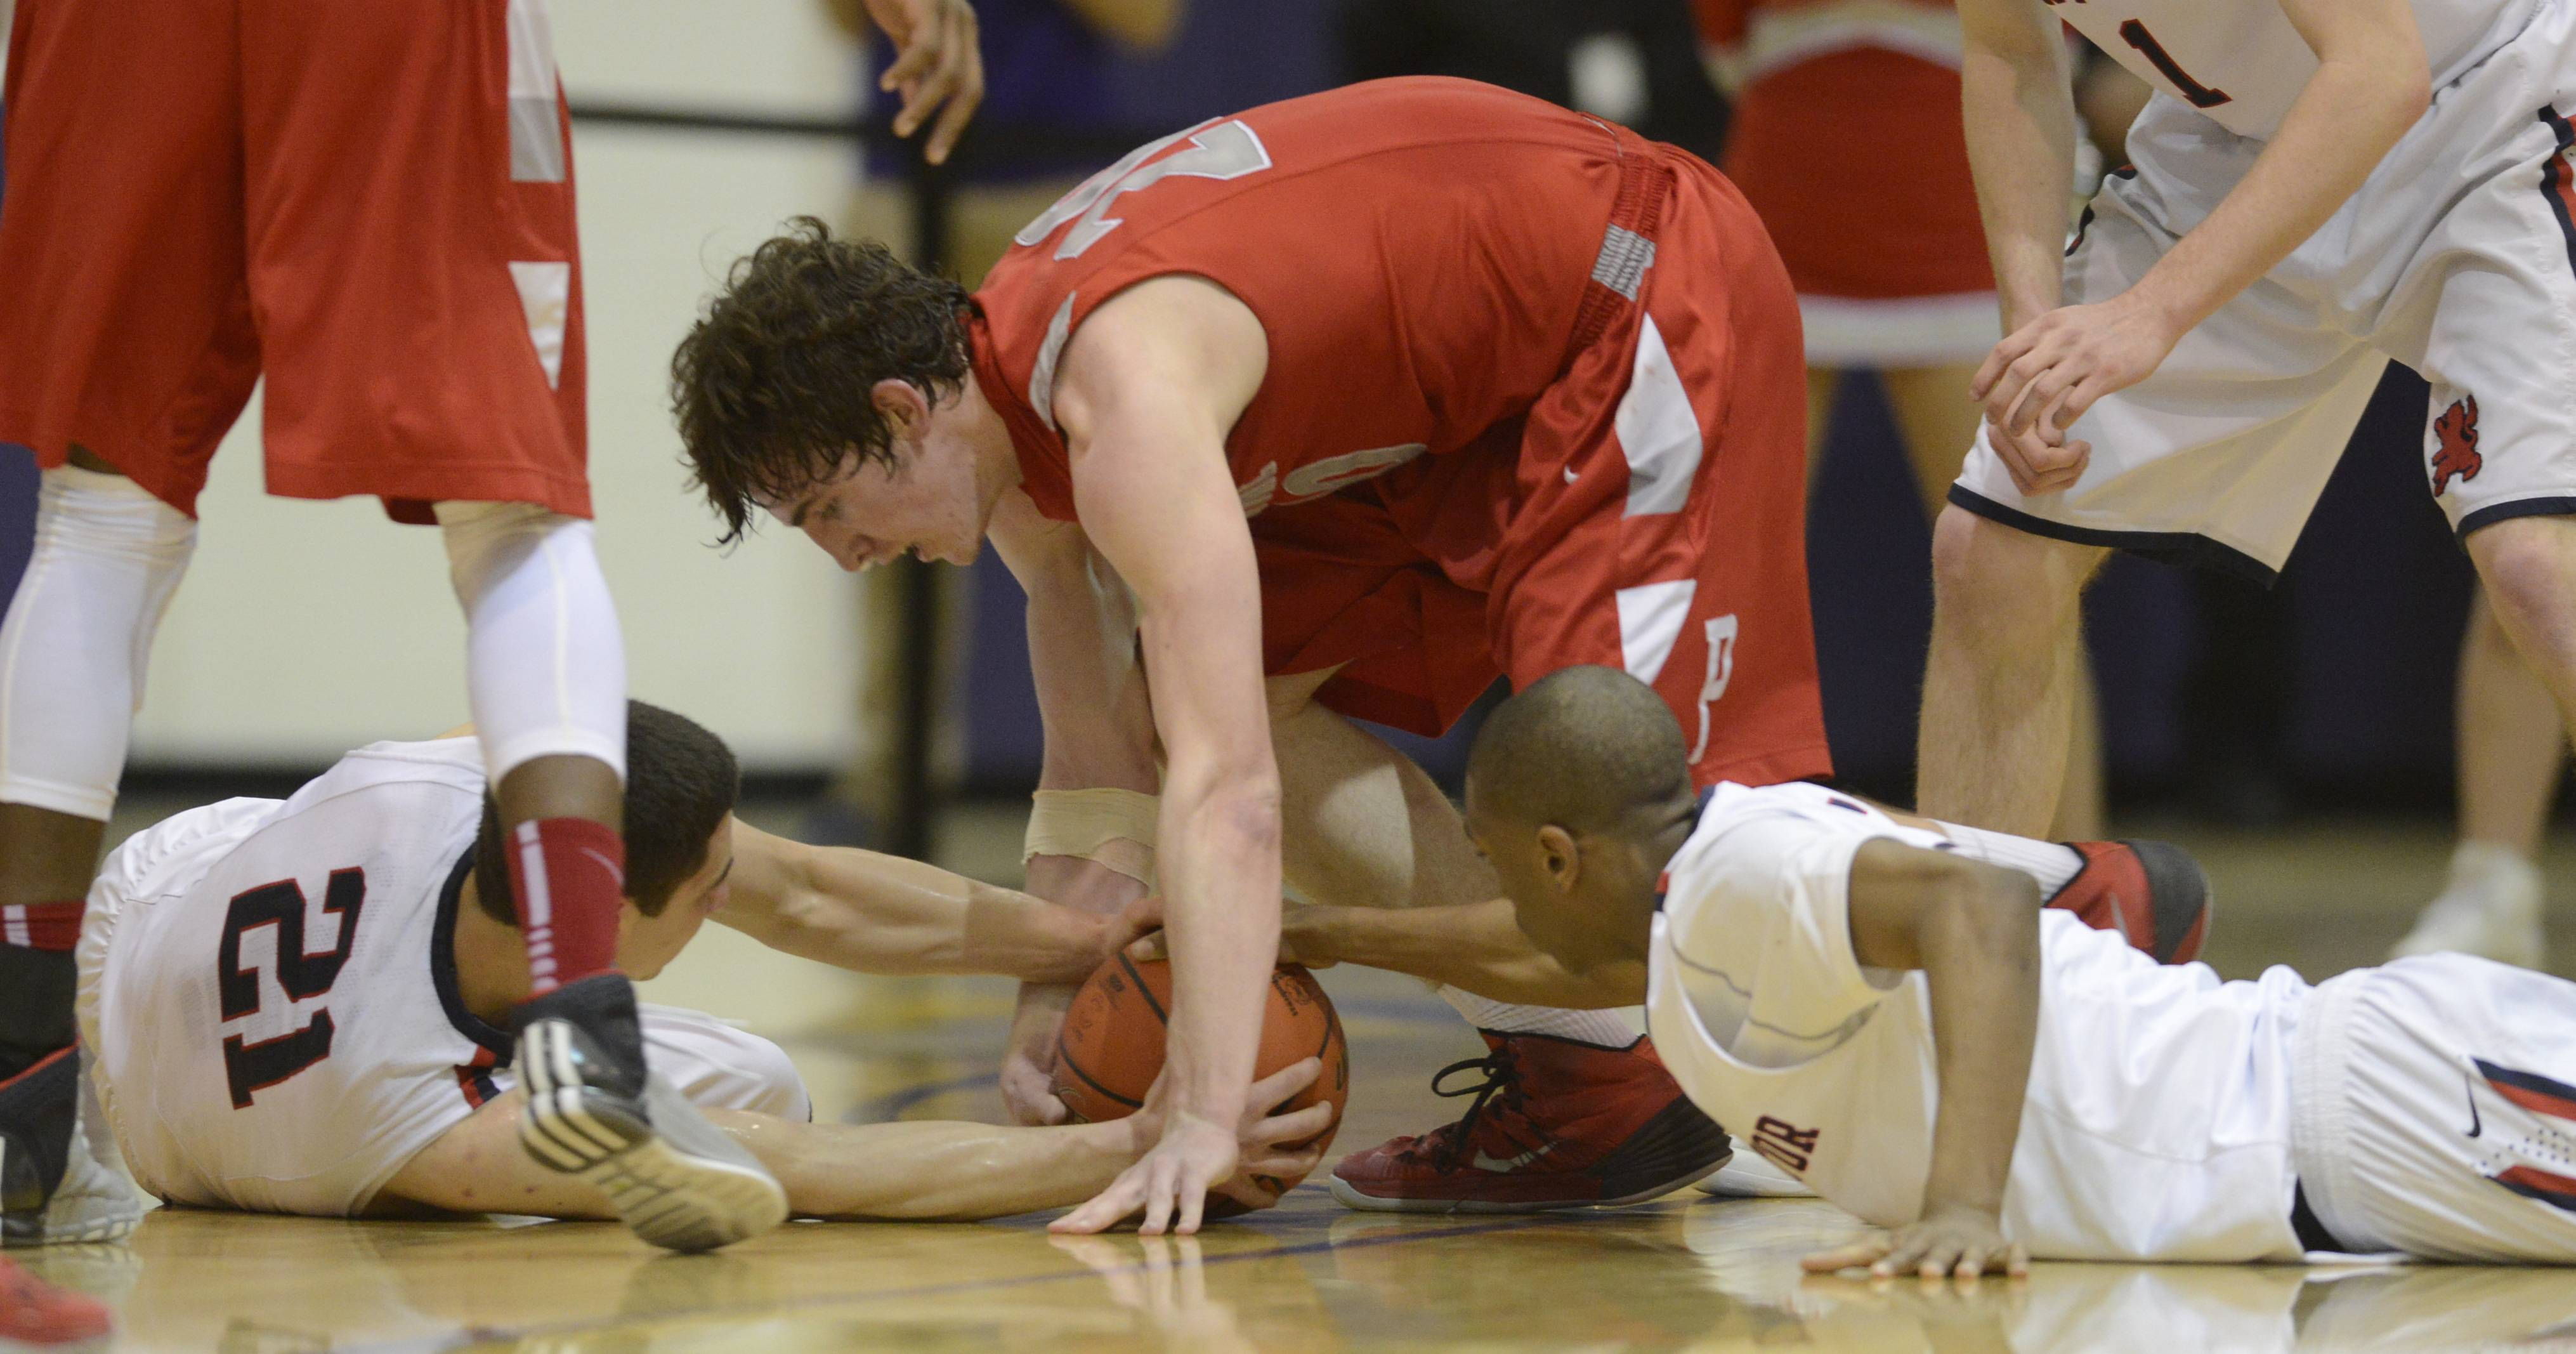 Images from the St. Viator vs. Palatine boys regional basketball game  at Rolling Meadows on Wednesday, March 5, 2014.